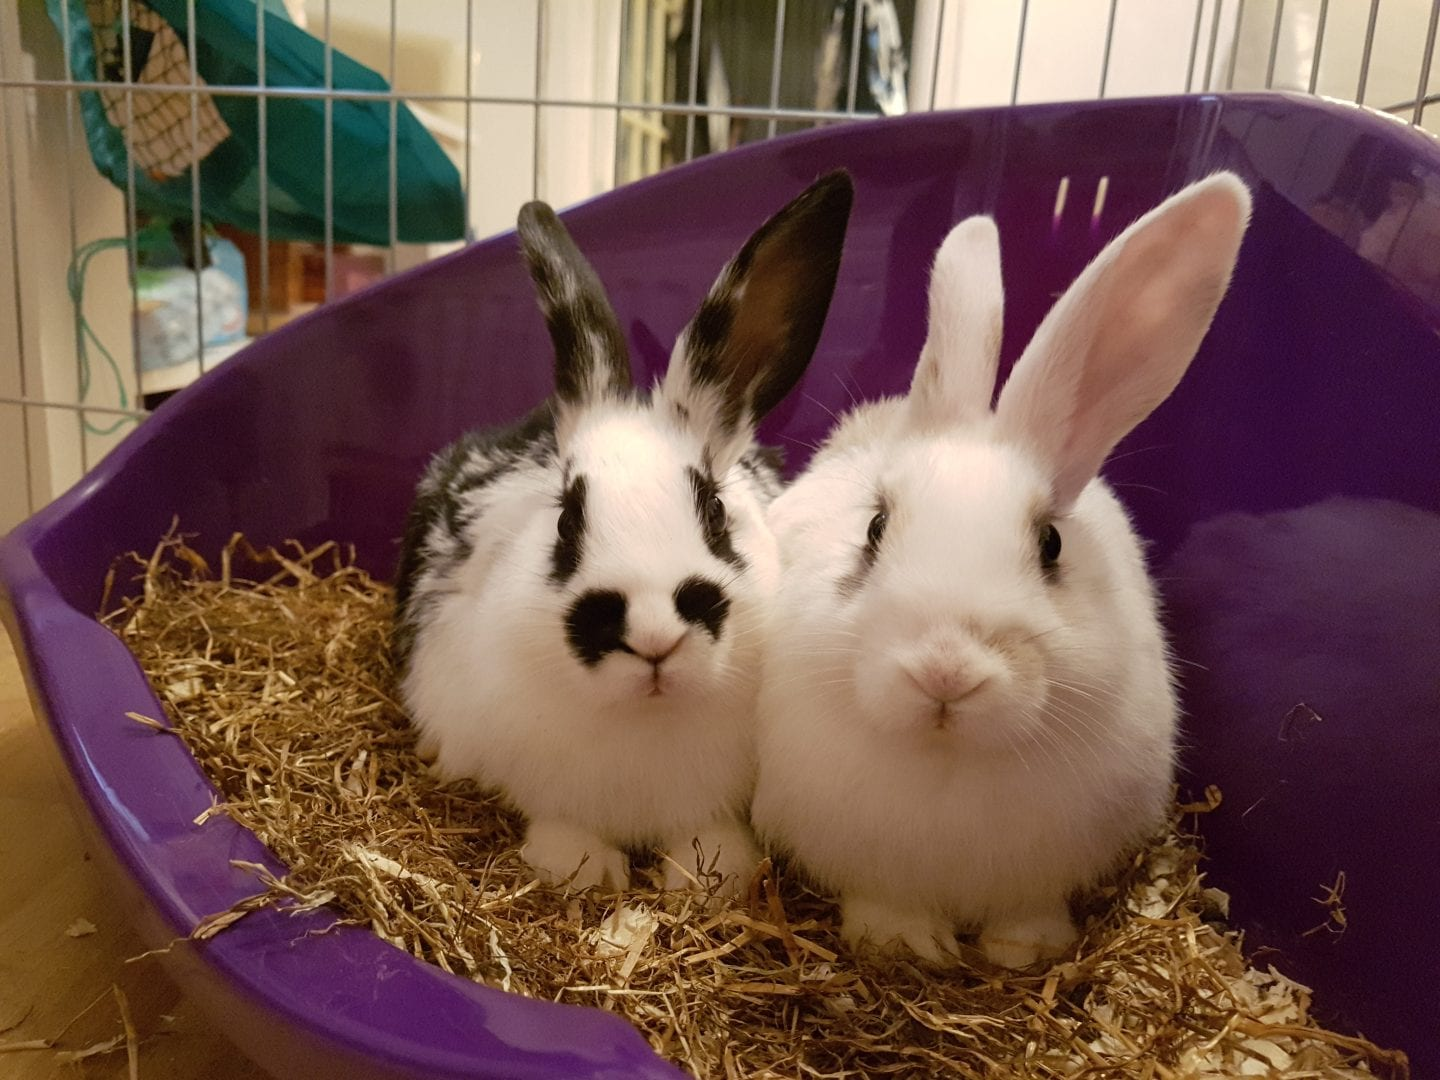 Introducing Hopper & Twinkie – our new bunnies